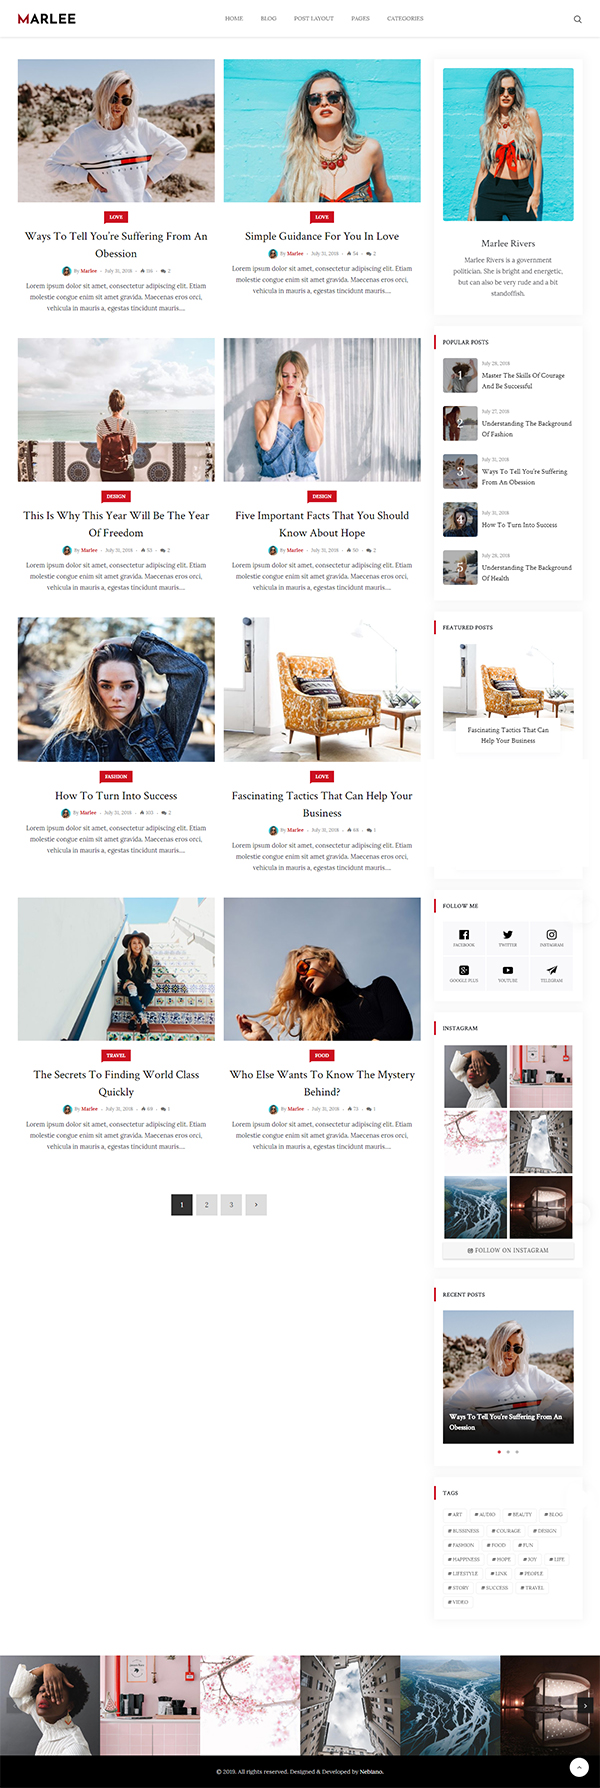 Marlee - Personal WordPress Blog Theme